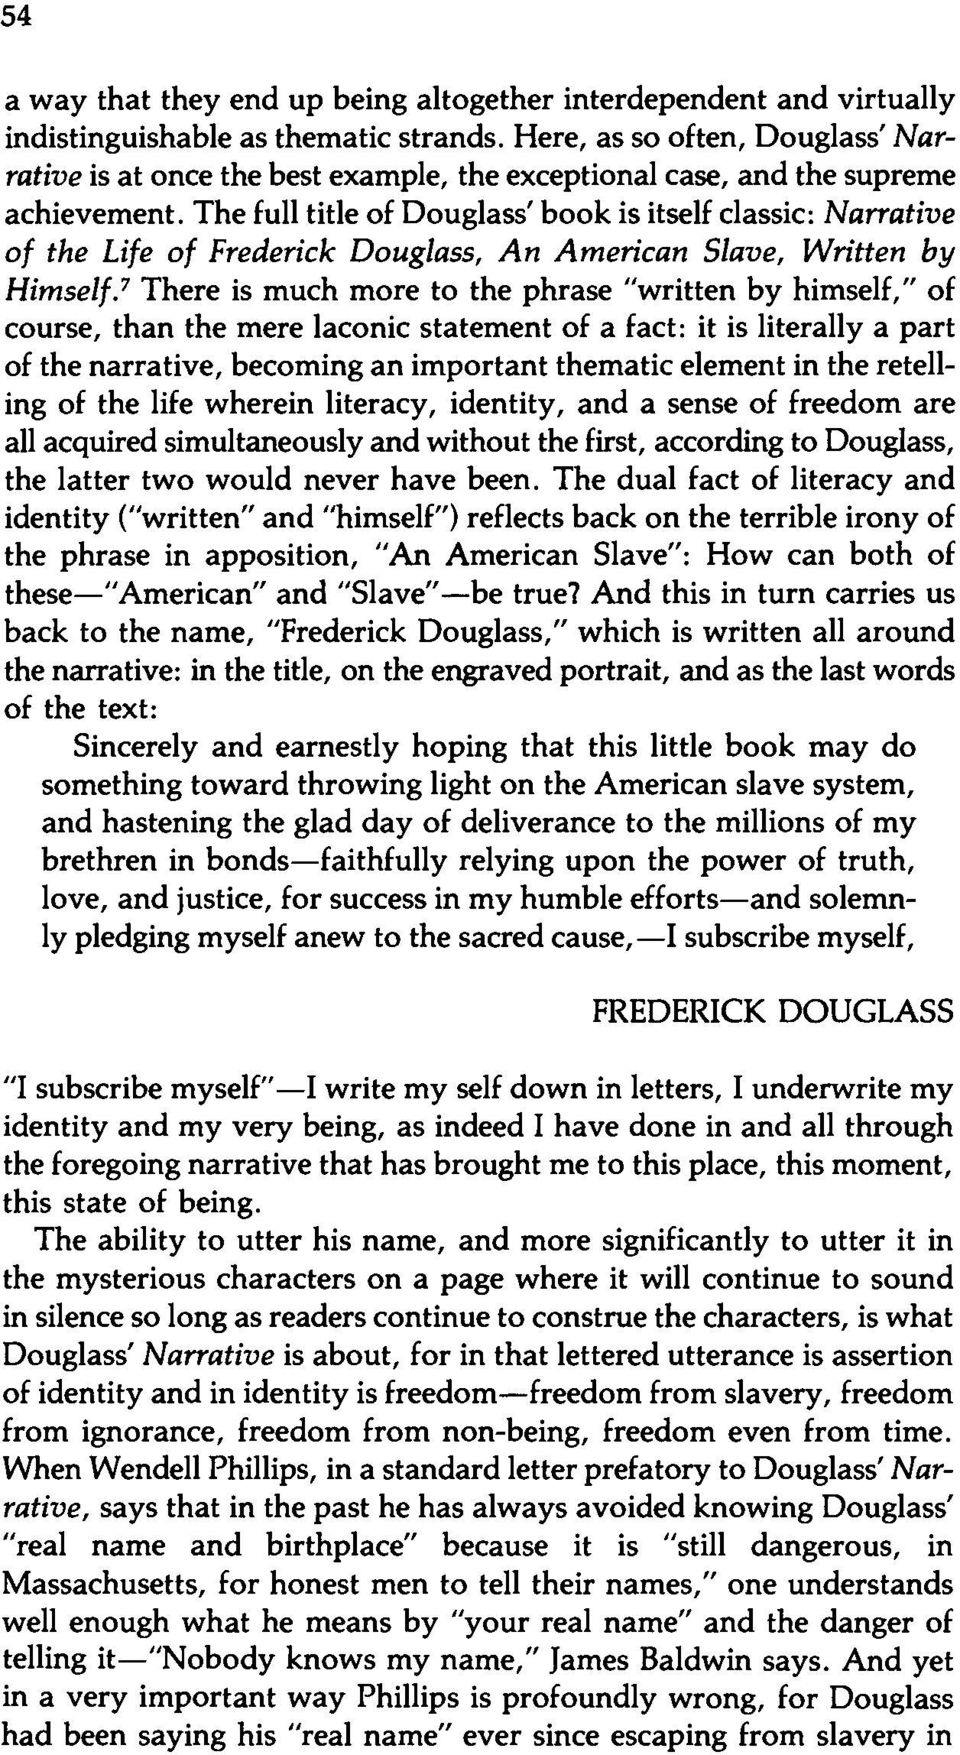 The full title of Douglass' book is itself classic: Narrative of the Life of Frederick Douglass, An American Slave, Written by Himself.